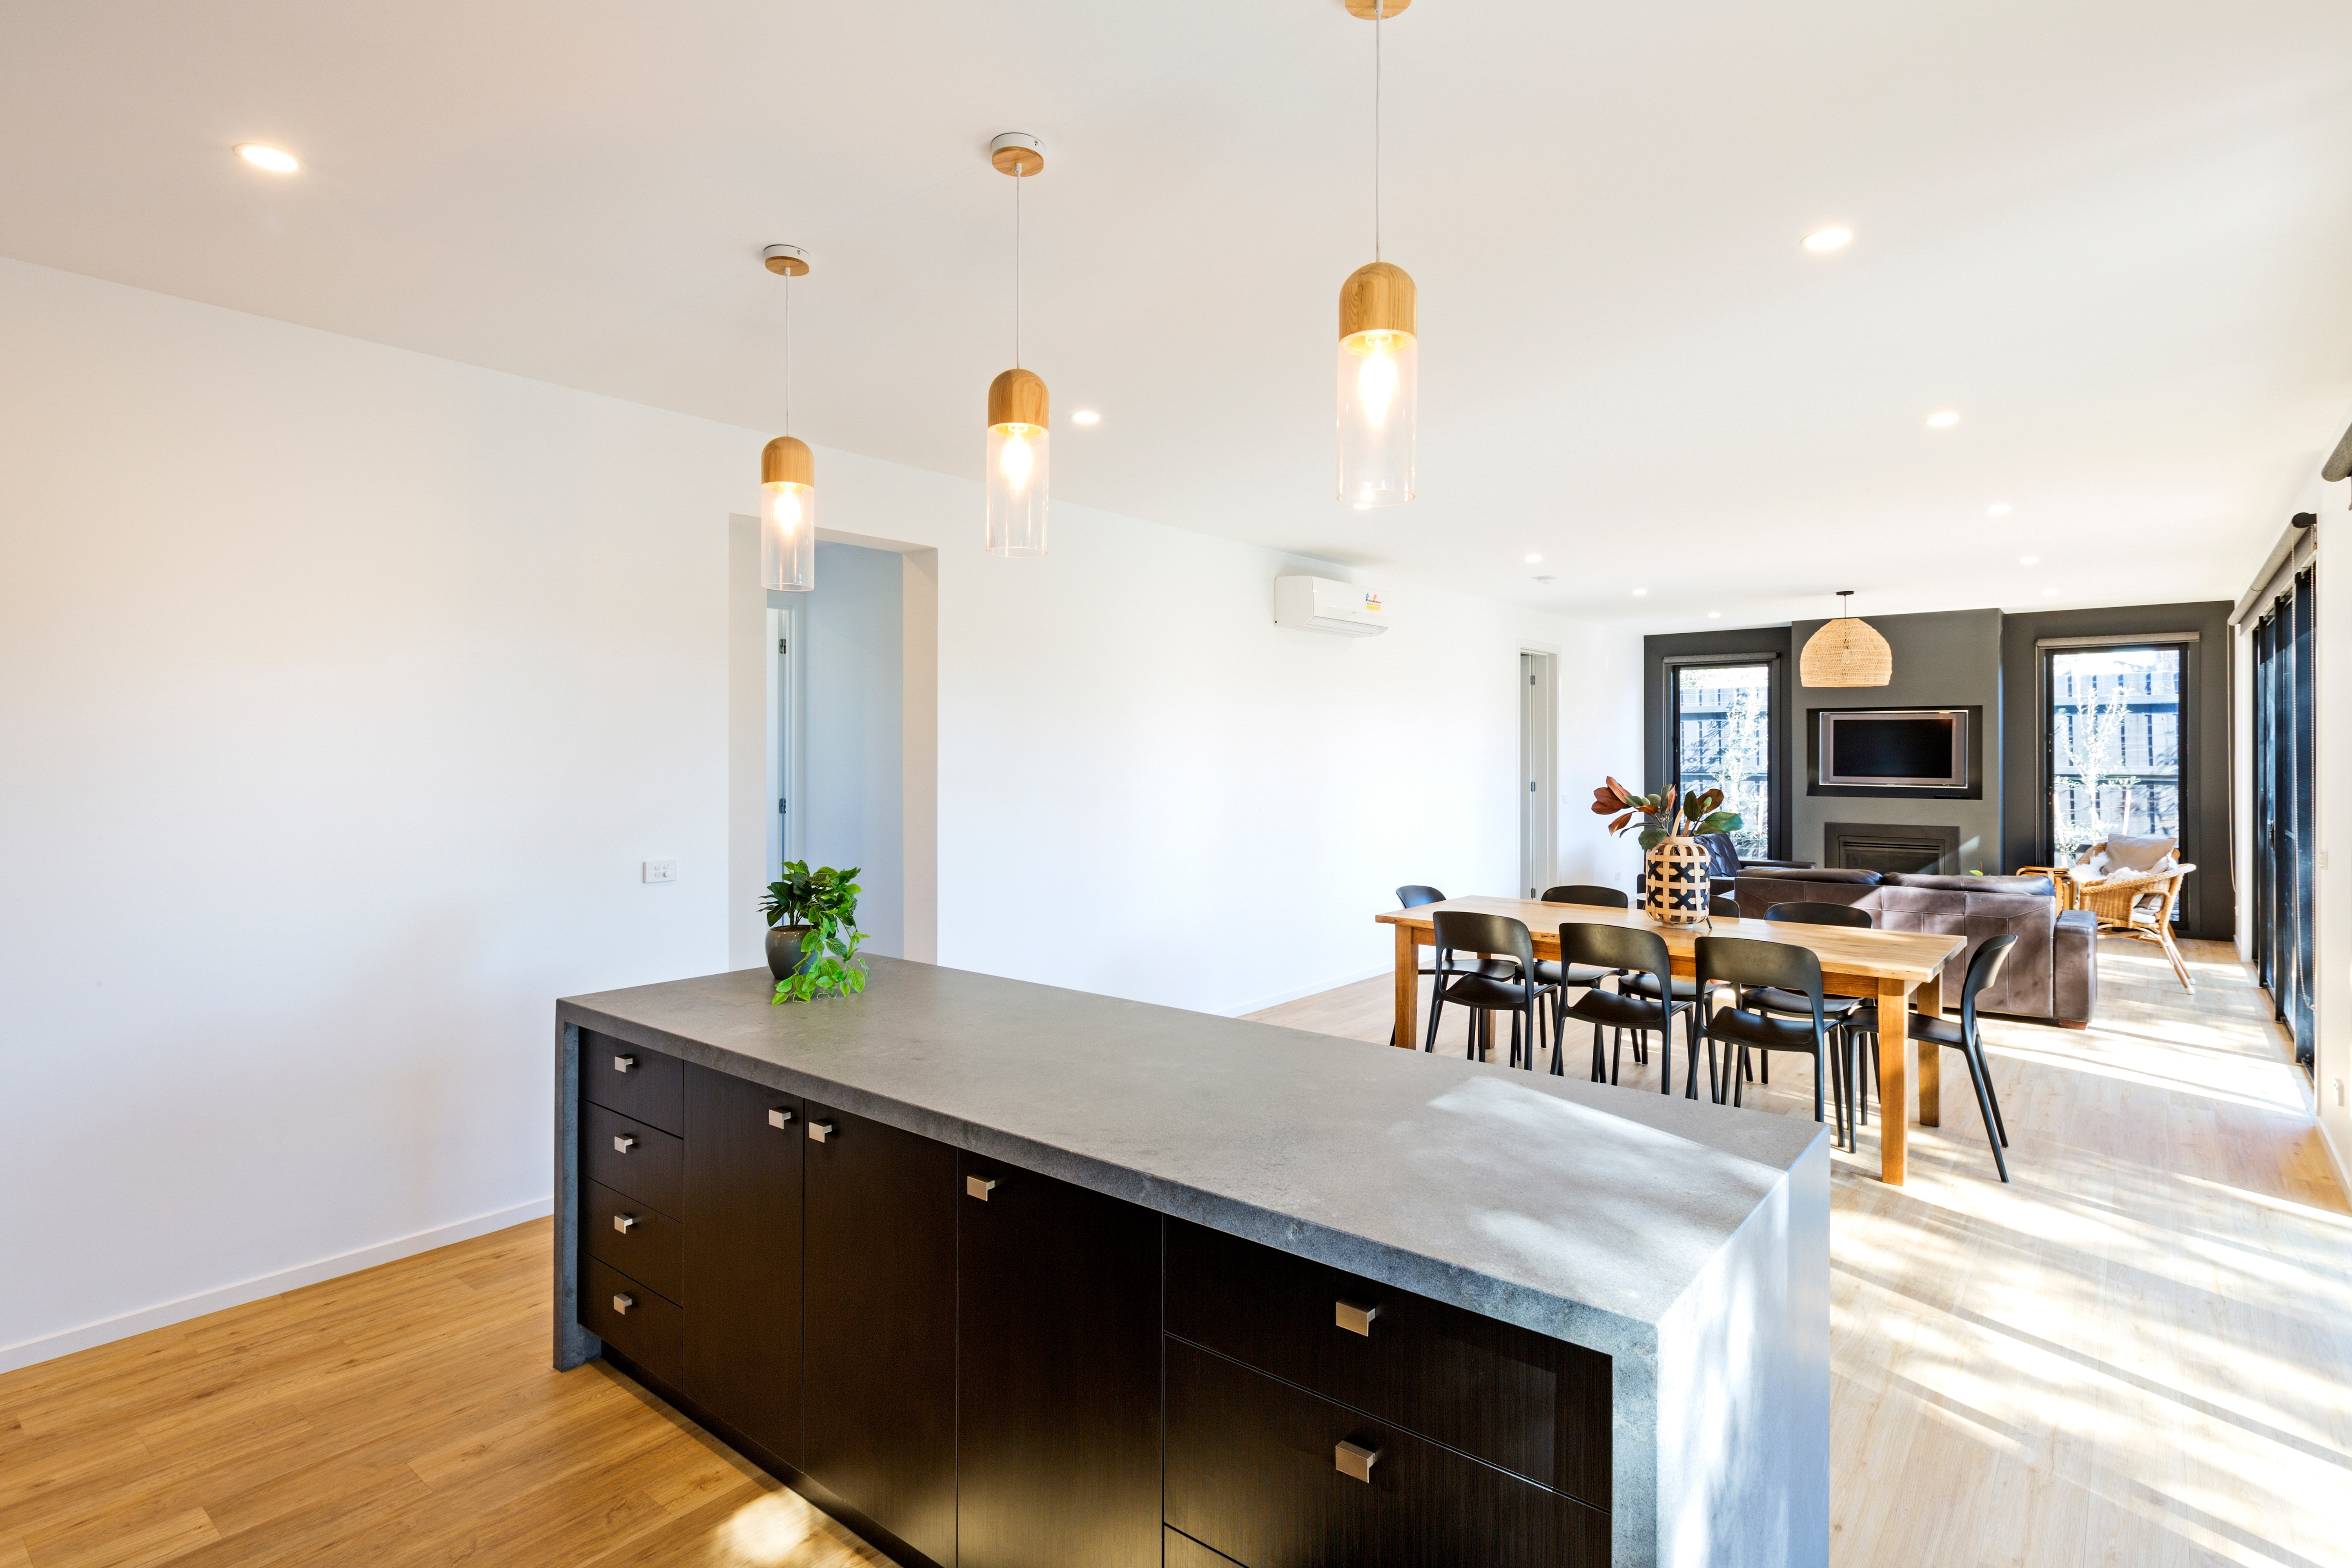 Project focus - rye kitchen and living